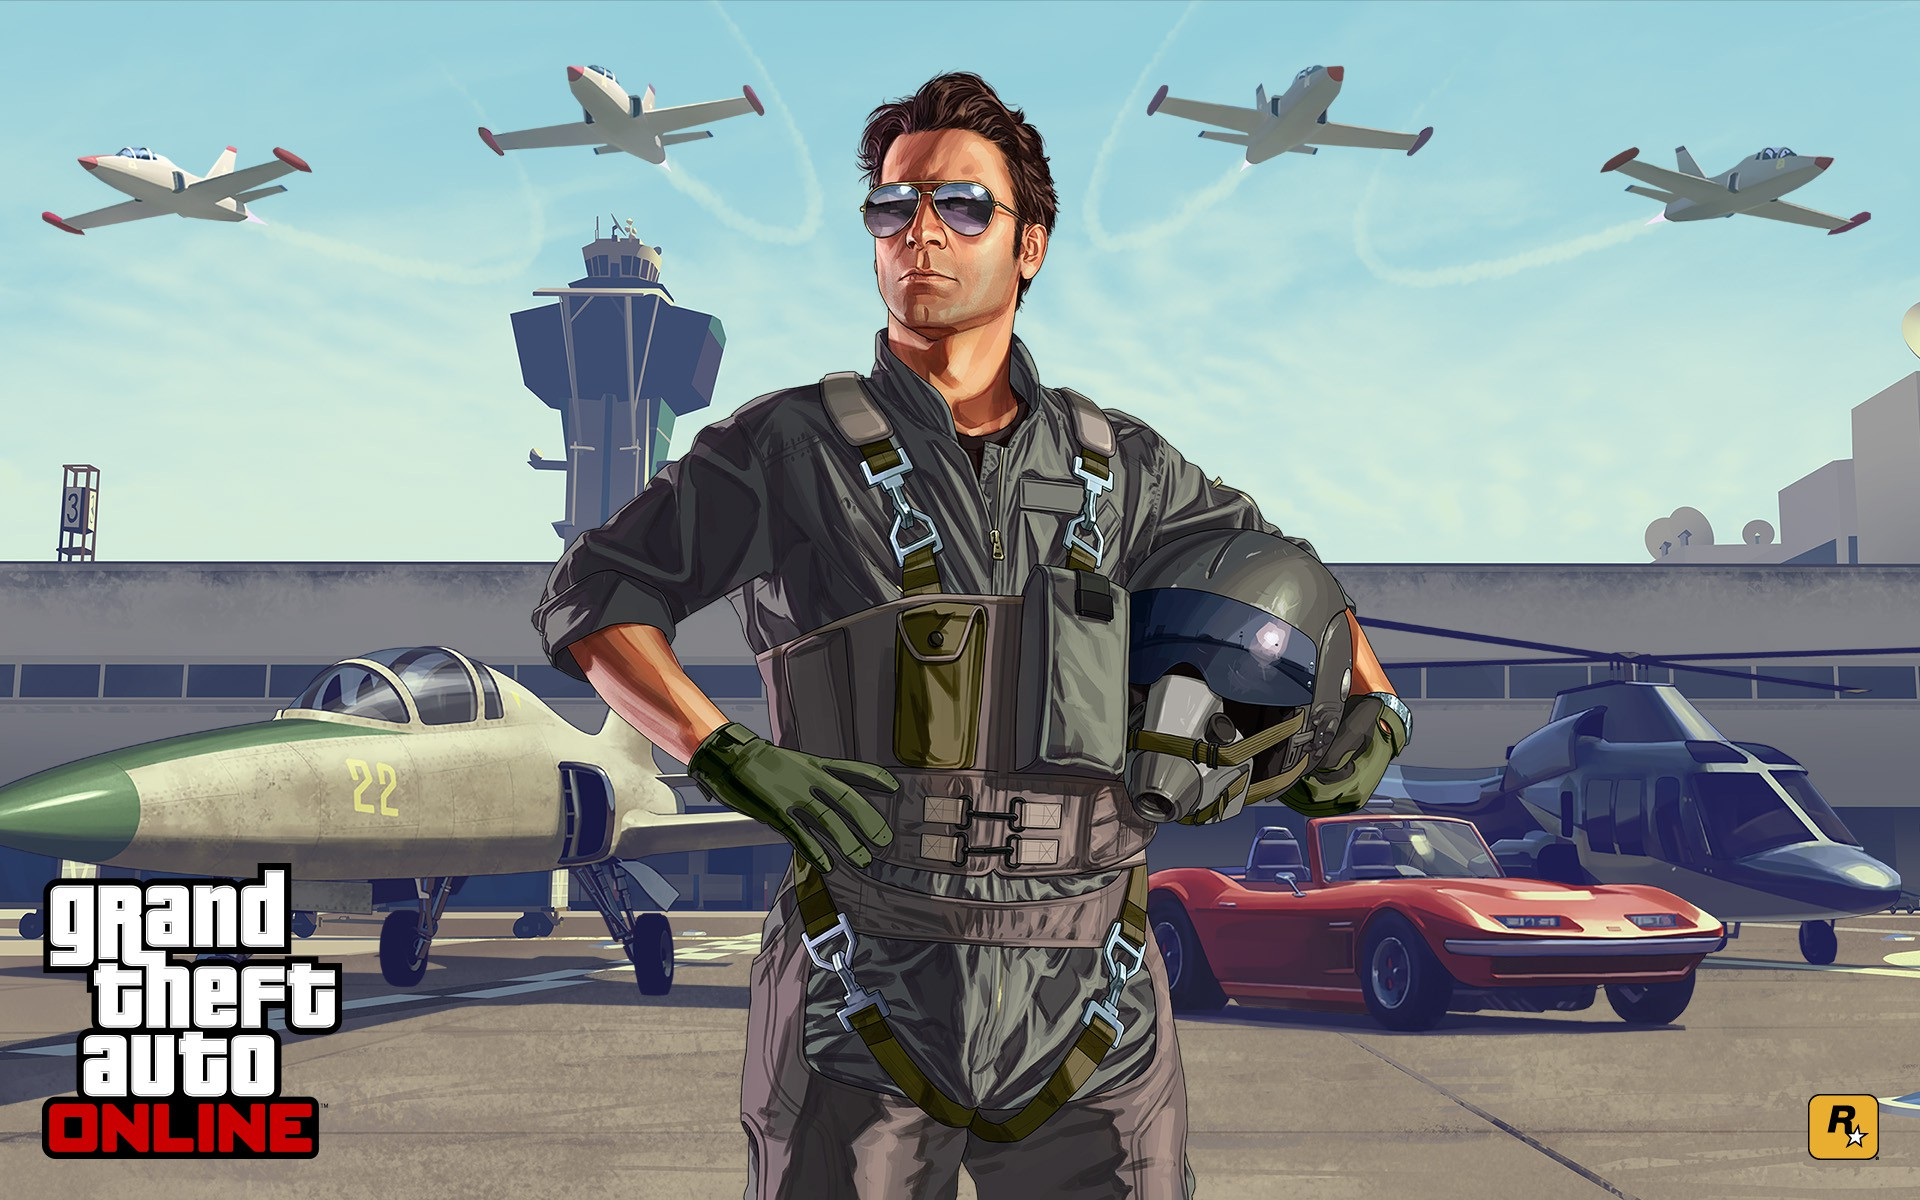 gta-5-artwork-ecole-de-pilotage.jpg